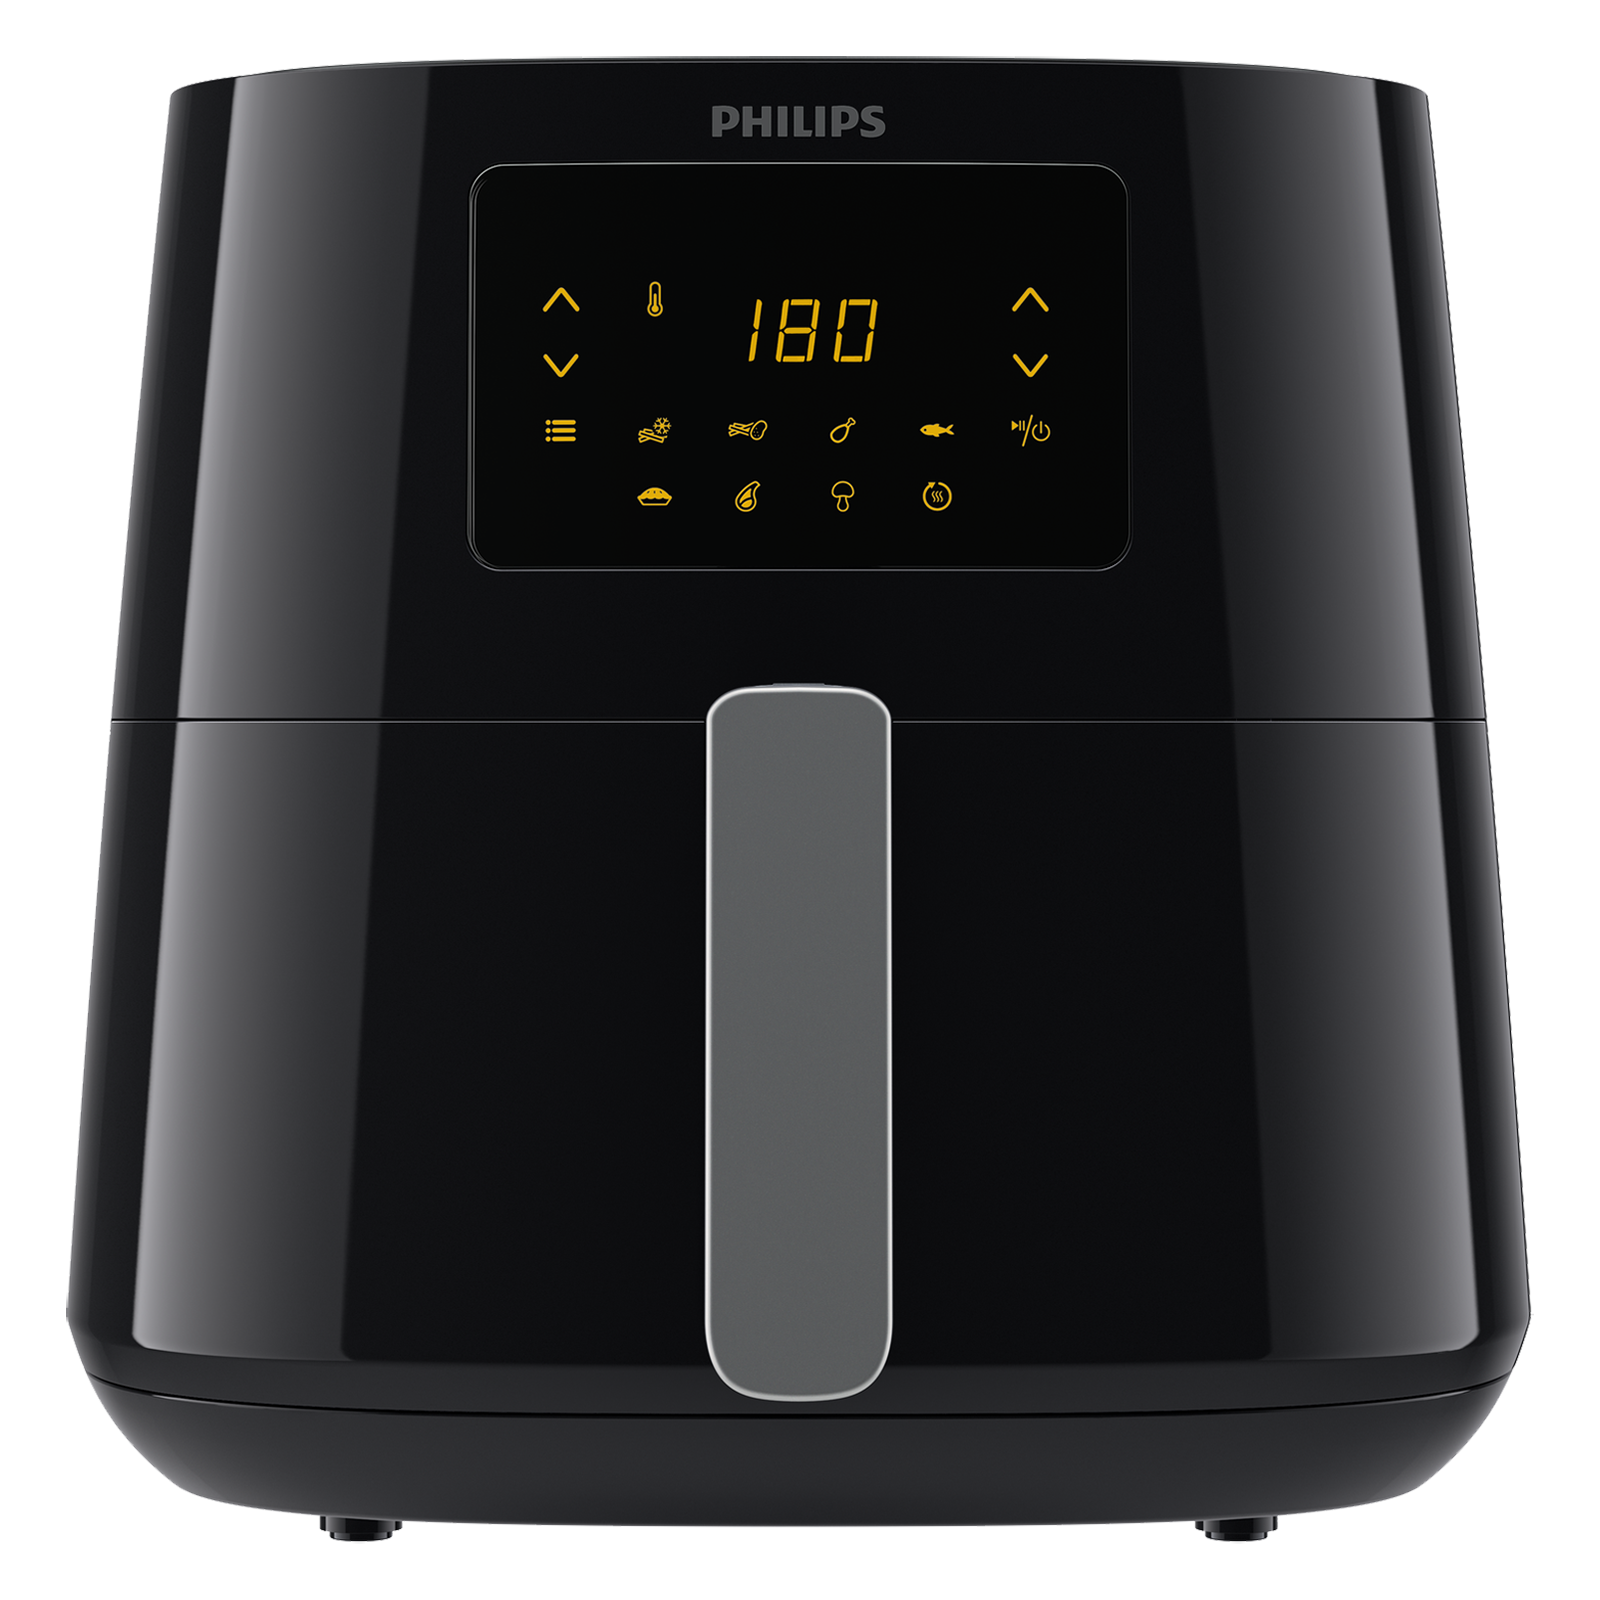 Philips Essential 6.2 Litres Electric Air Fryer (Rapid Air Technology, HD9720/70 XL, Black)